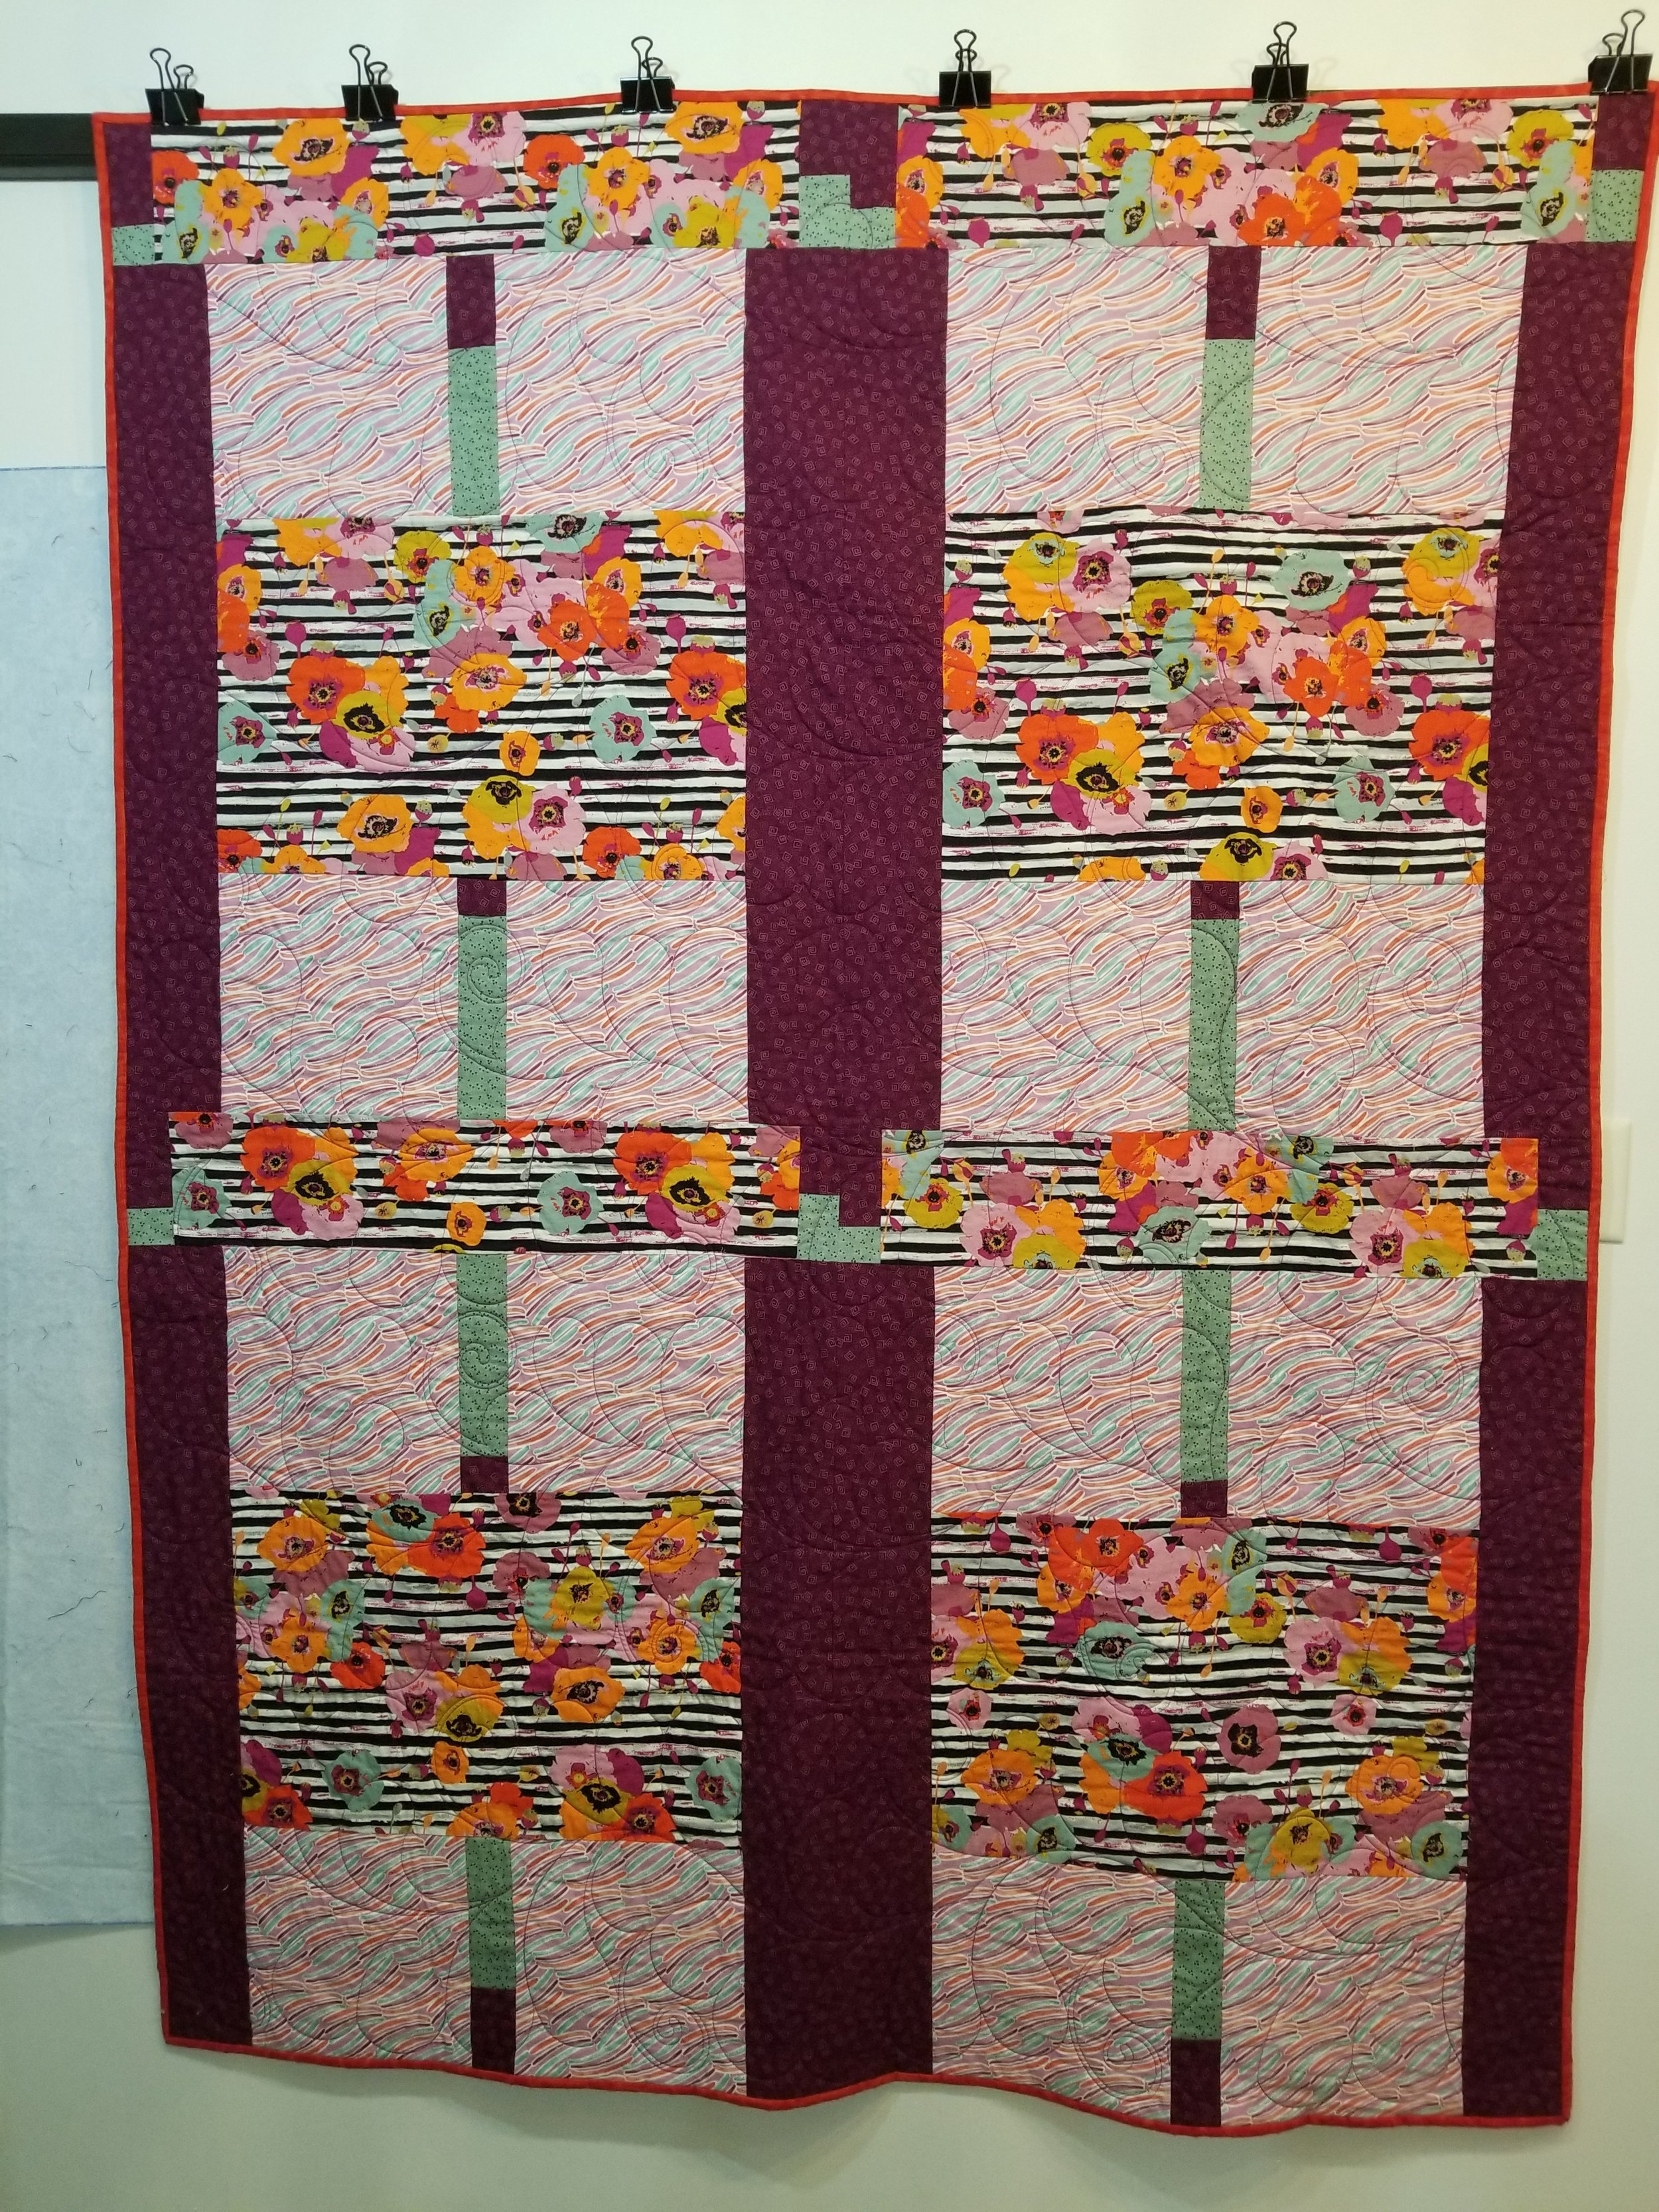 A bright binding was chosen to complement the quilt.